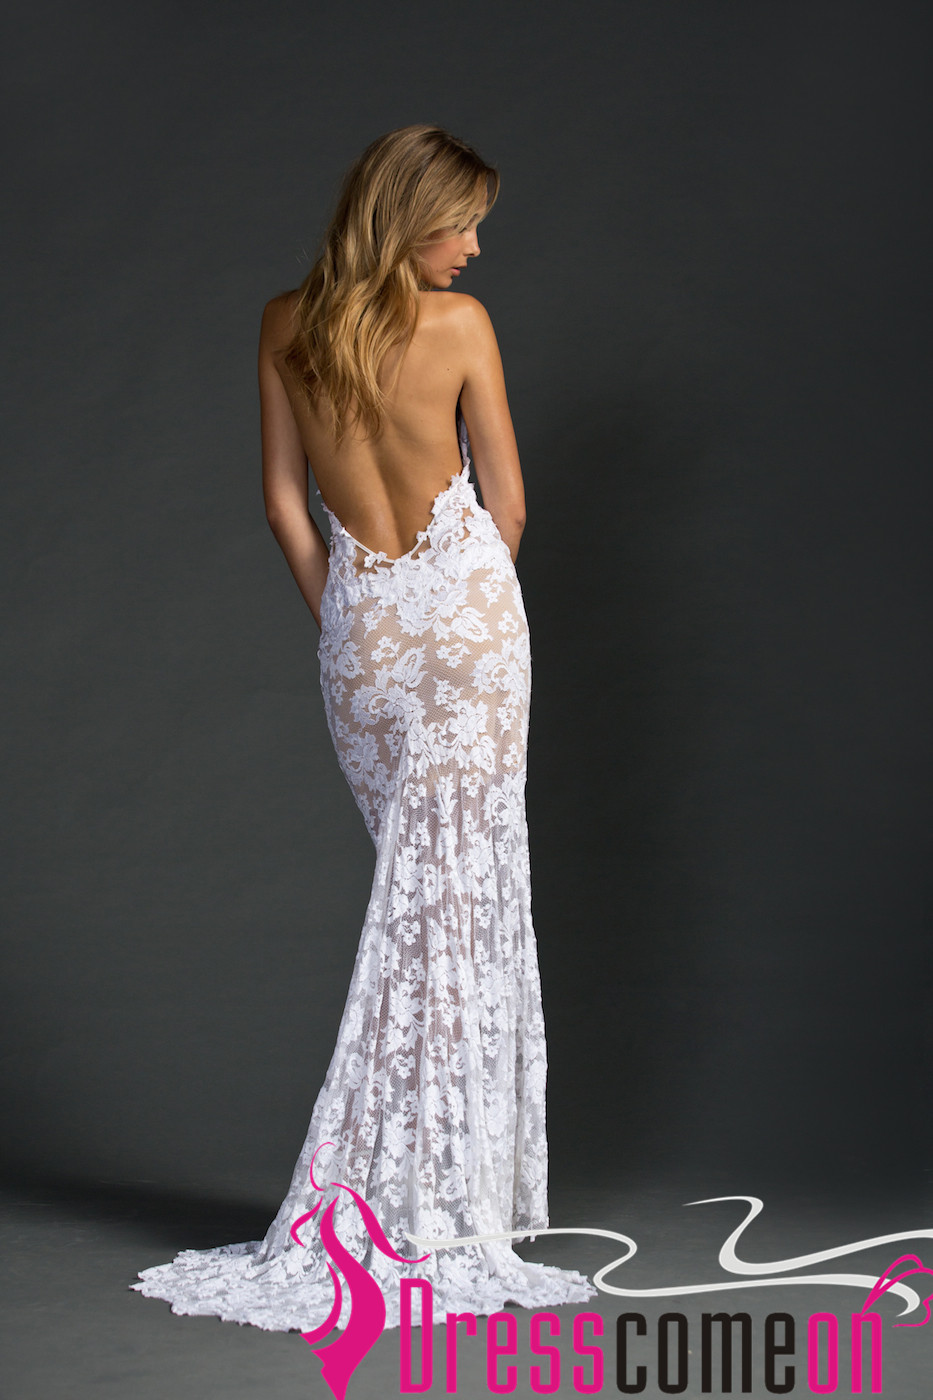 beach backless wedding dress sexy mermaid lace white open backs summer weddi dresses for summer wedding Beach Backless Wedding Dress Sexy Mermaid Lace White Open Backs Summer Wedding Dresses Thumbnail